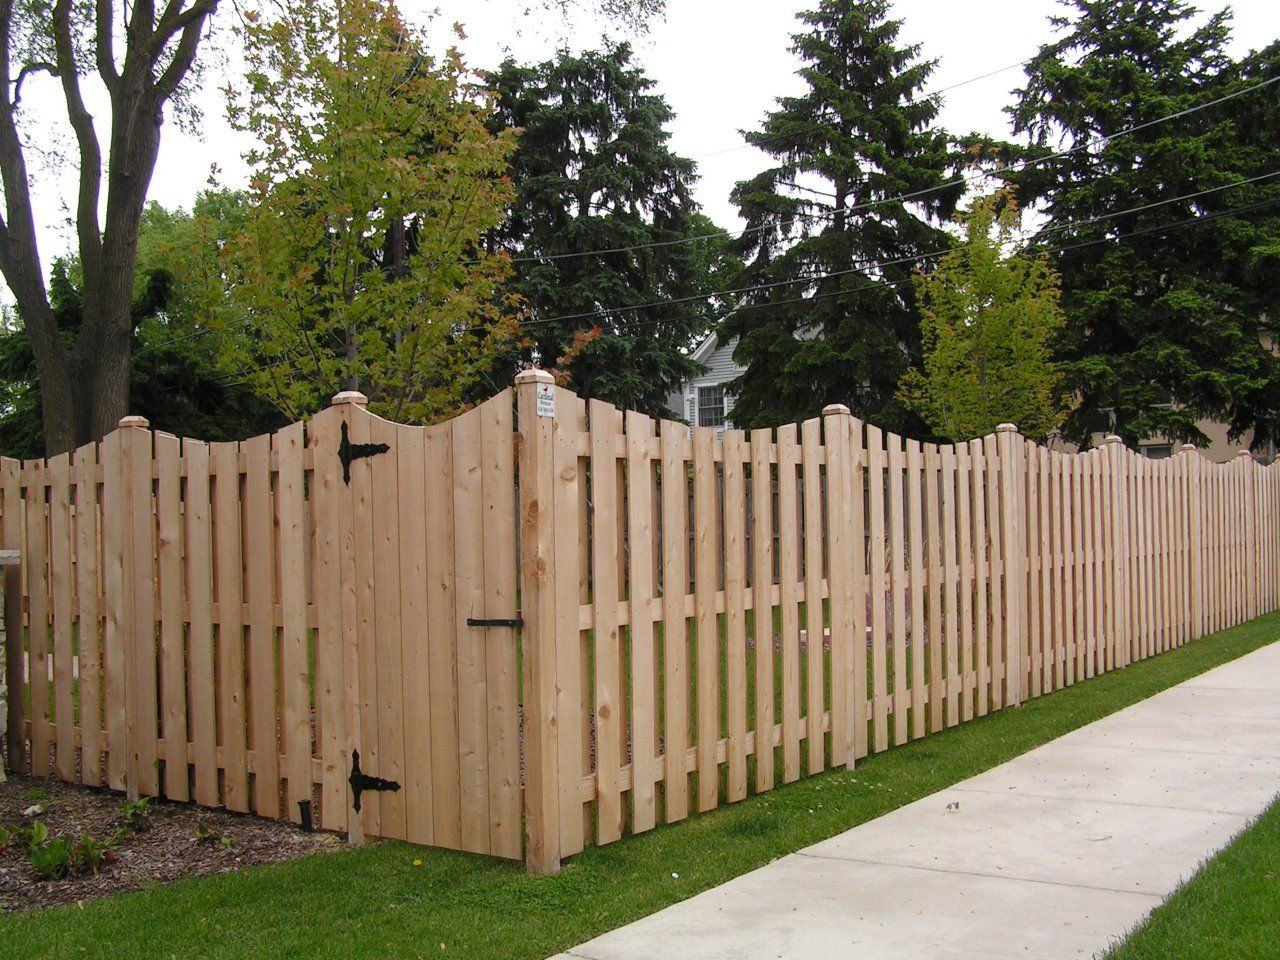 6 Shadowbox Scalloped Cedar Fence Jpg 1280 960 Shadow Box